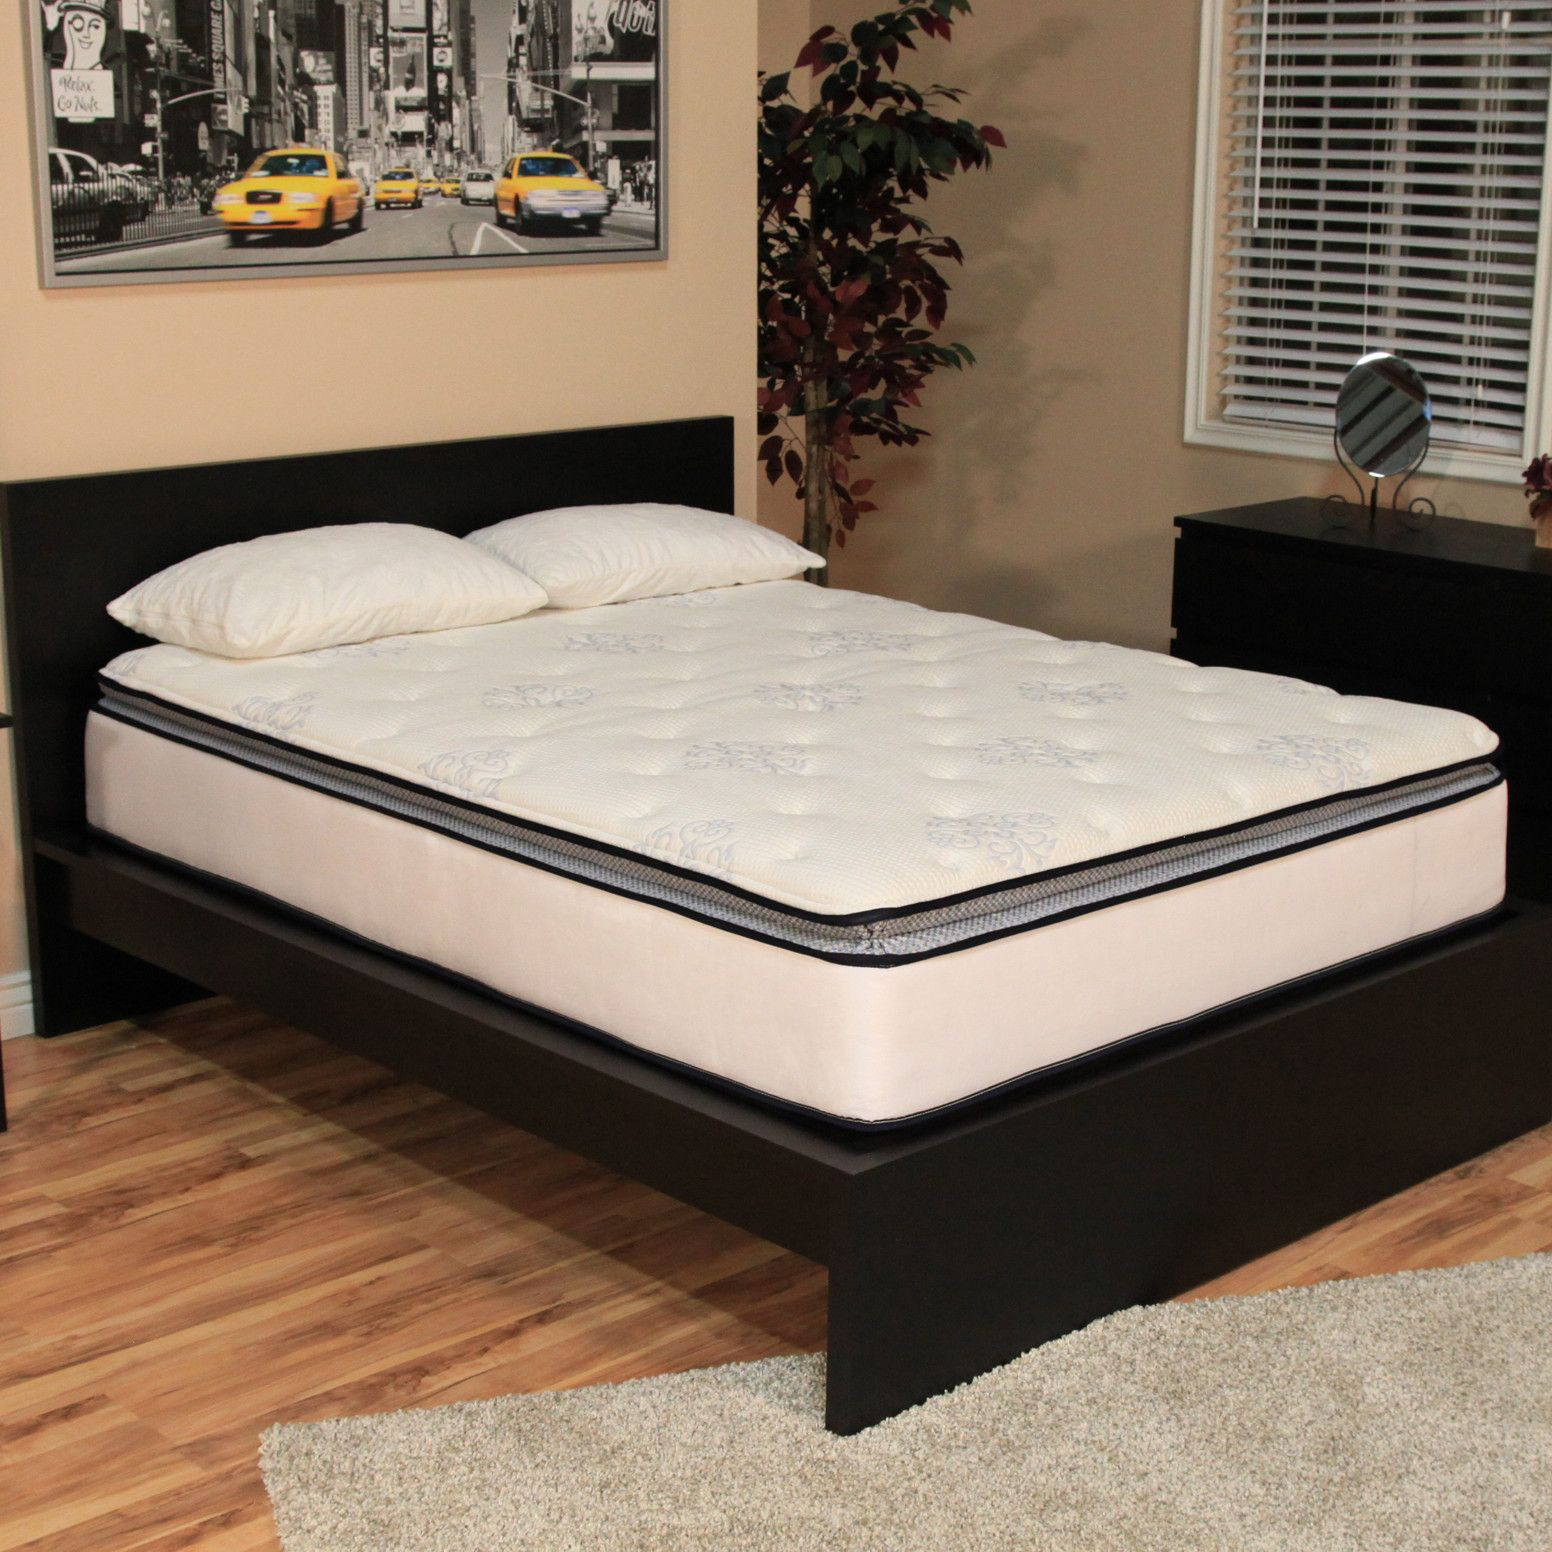 Dreams Mattress Guarantee Brooklyn Bedding Ultimate Dreams 12